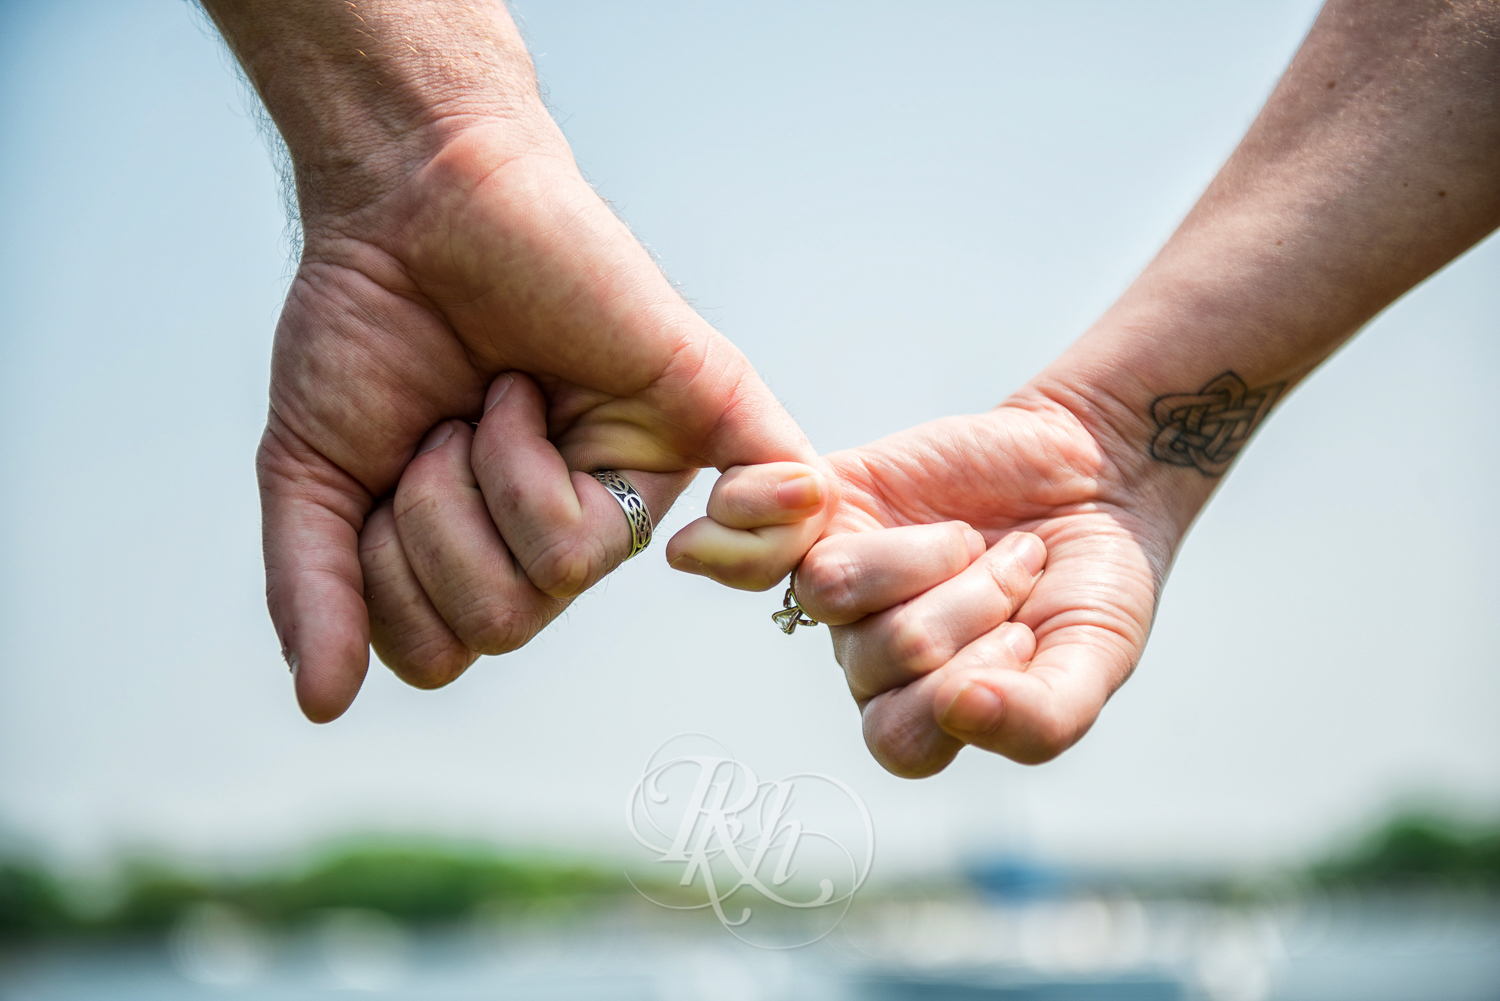 Sean & Jessica - Minnesota Engagement Photography - RKH Images-3.jpg